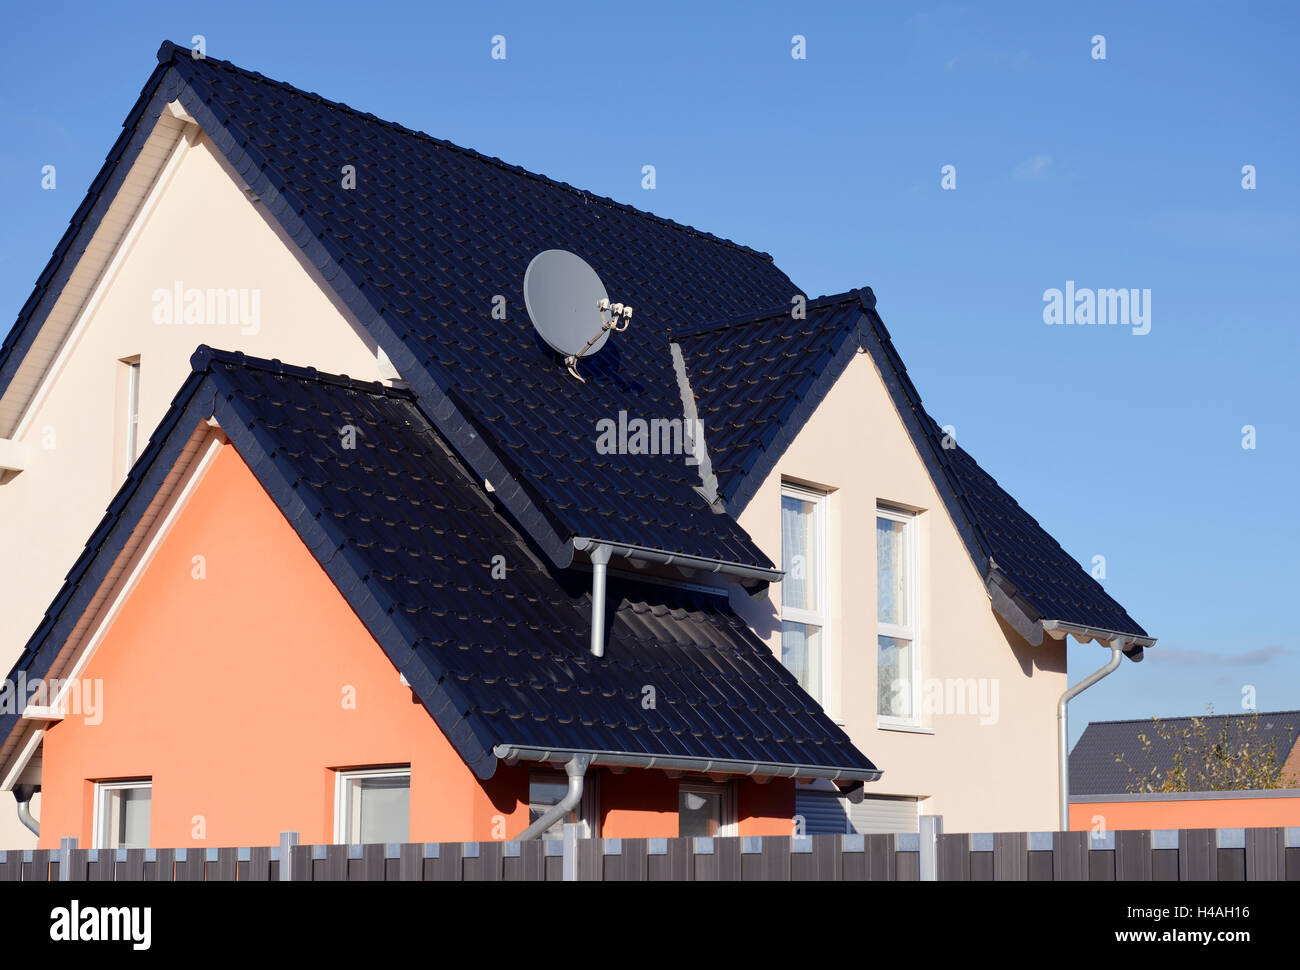 Yellow-orange single-family house, Germany, North Rhine-Westphalia, Dormagen Stock Photo